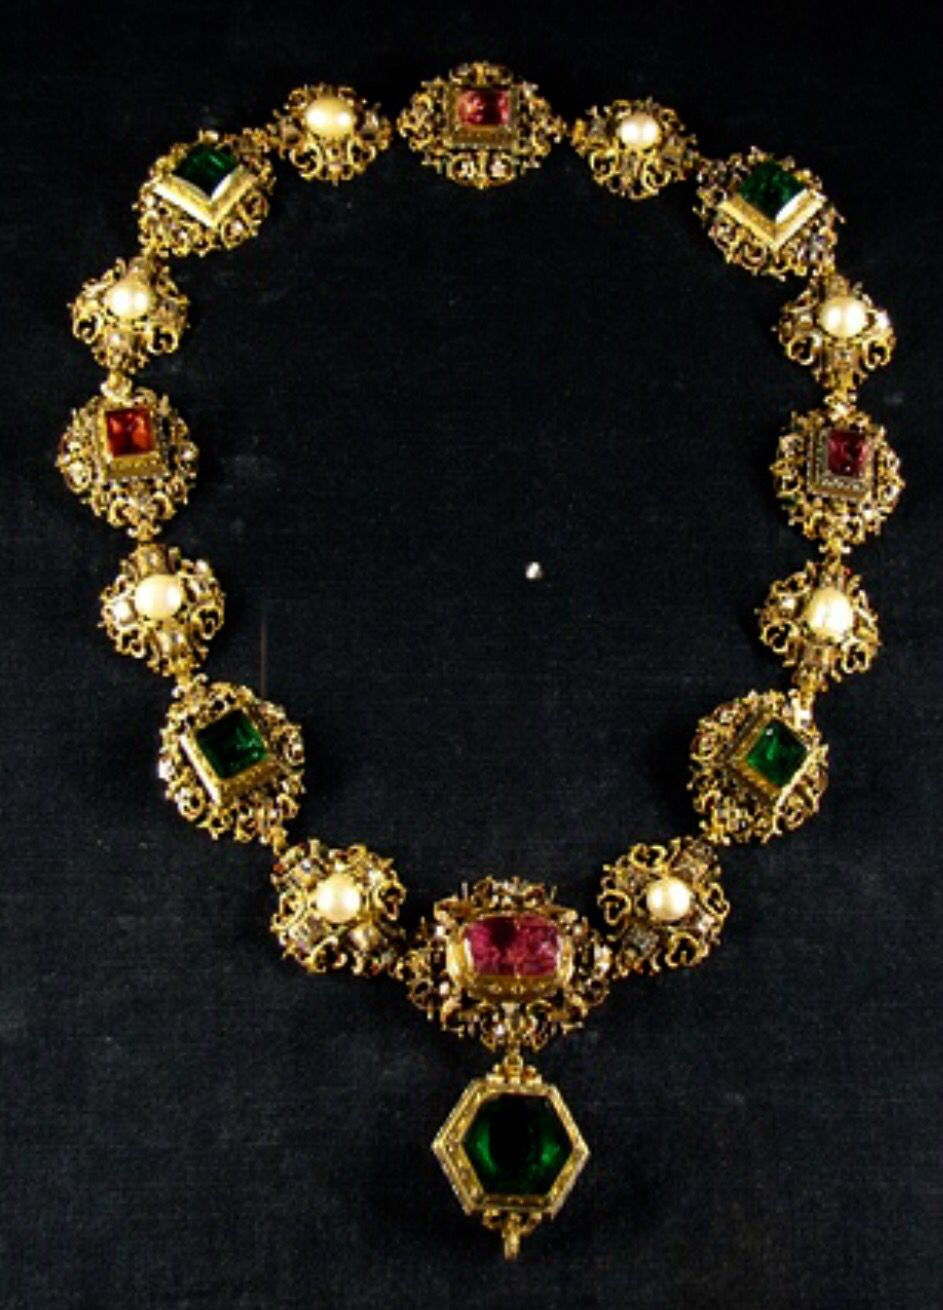 russian crown jewel necklace jewelry vii pinterest